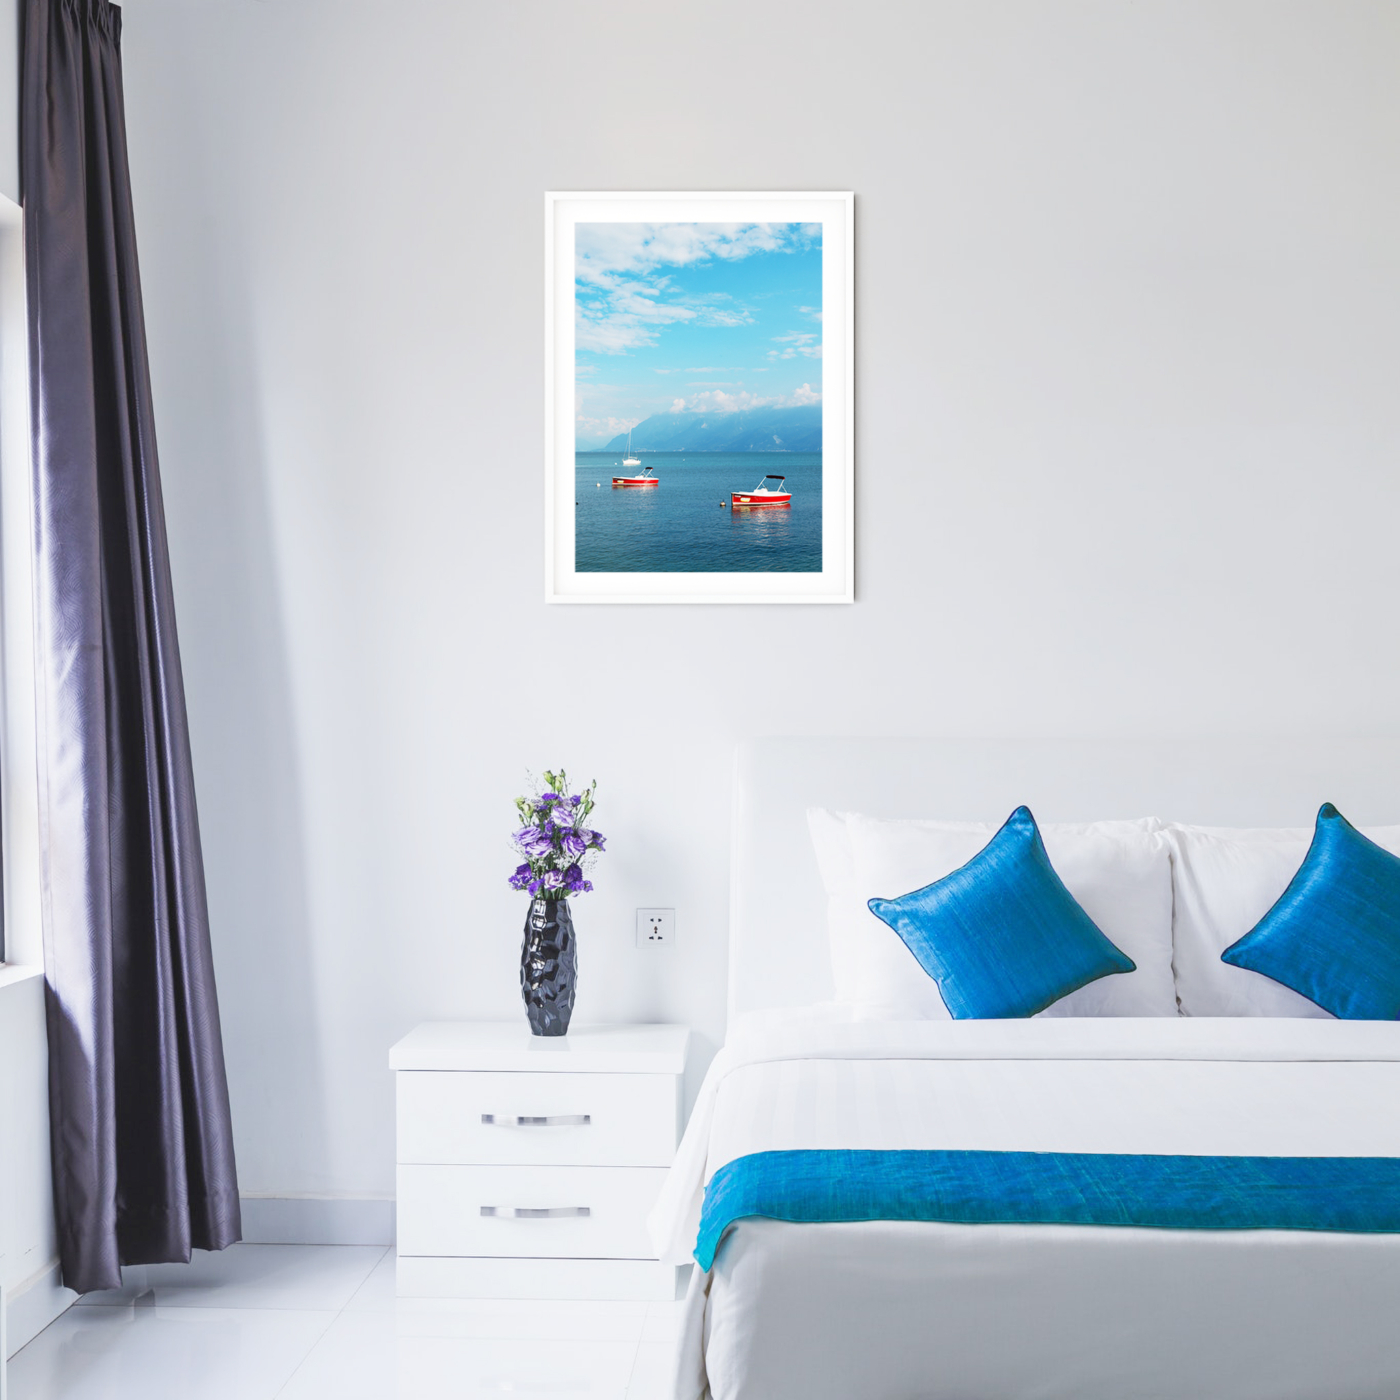 Boats on the Lake Leman - color print with border in white frame in the bedroom